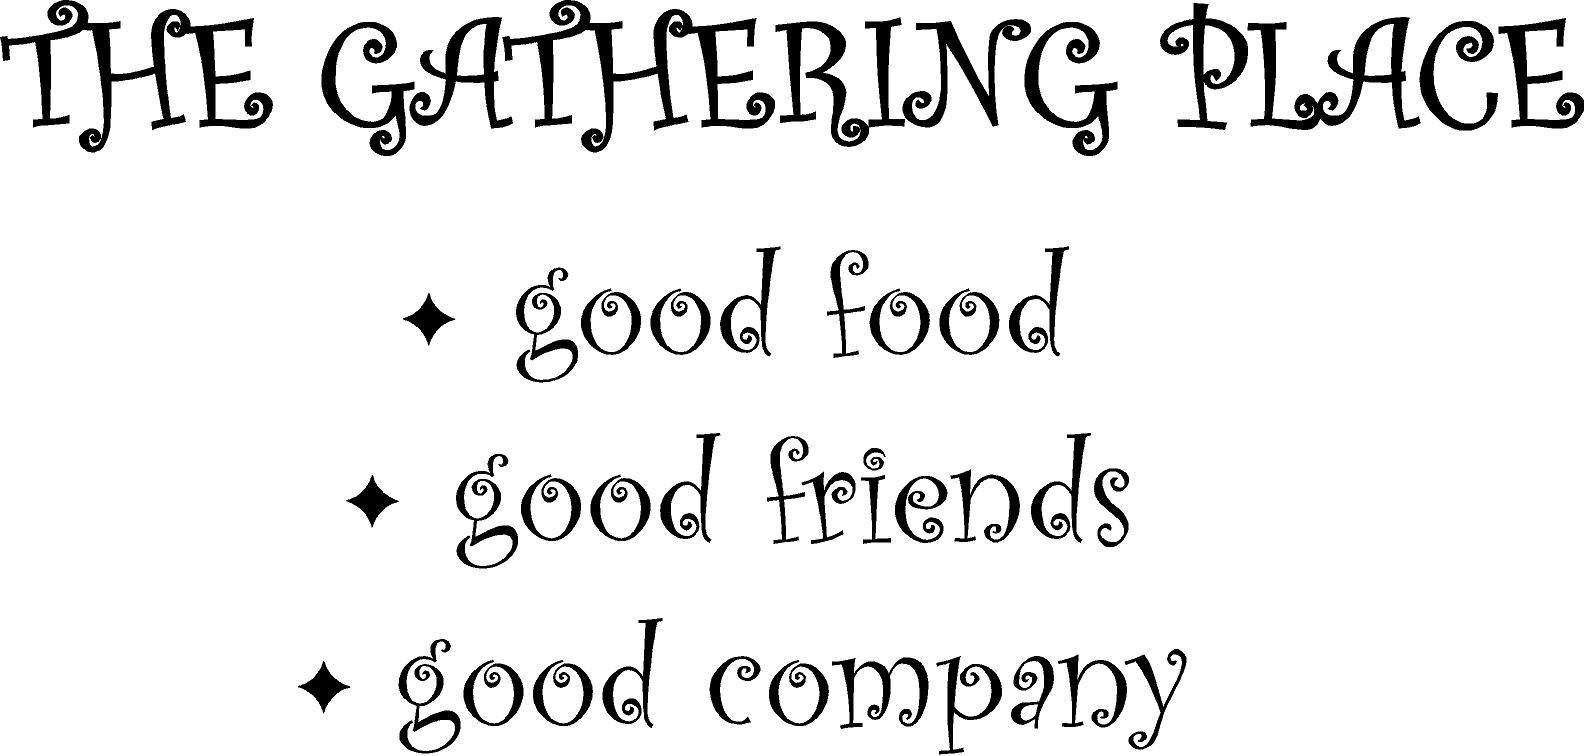 Quotes About Food With Friends : Friends gathering quotes quotesgram